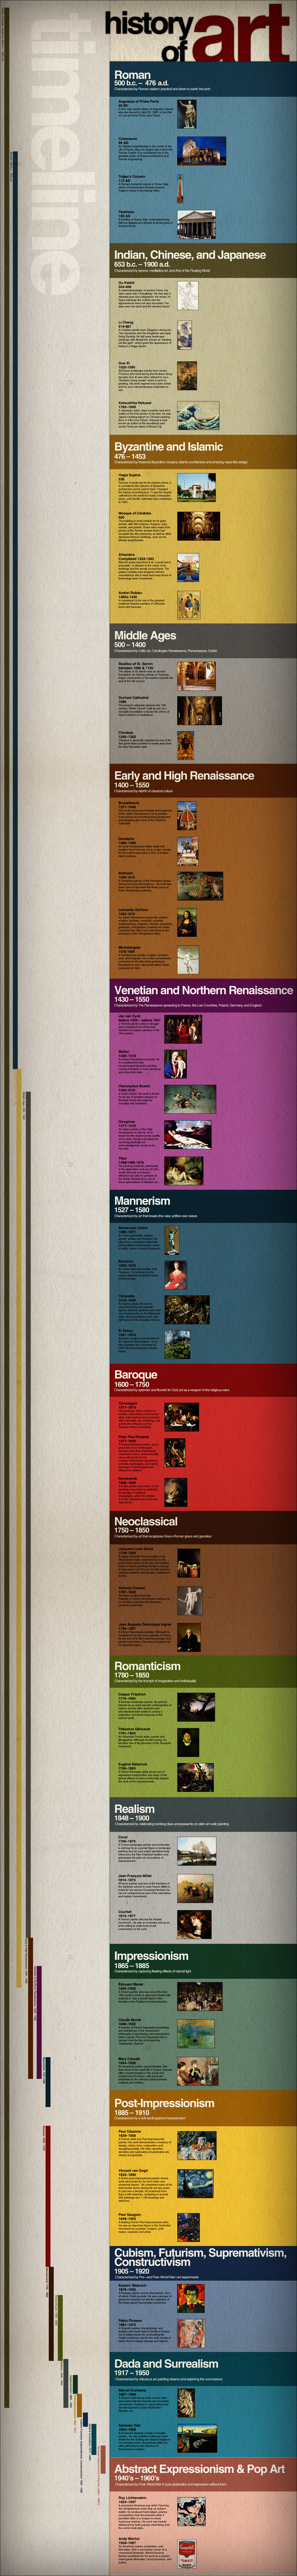 Timeline history of art altavistaventures Image collections